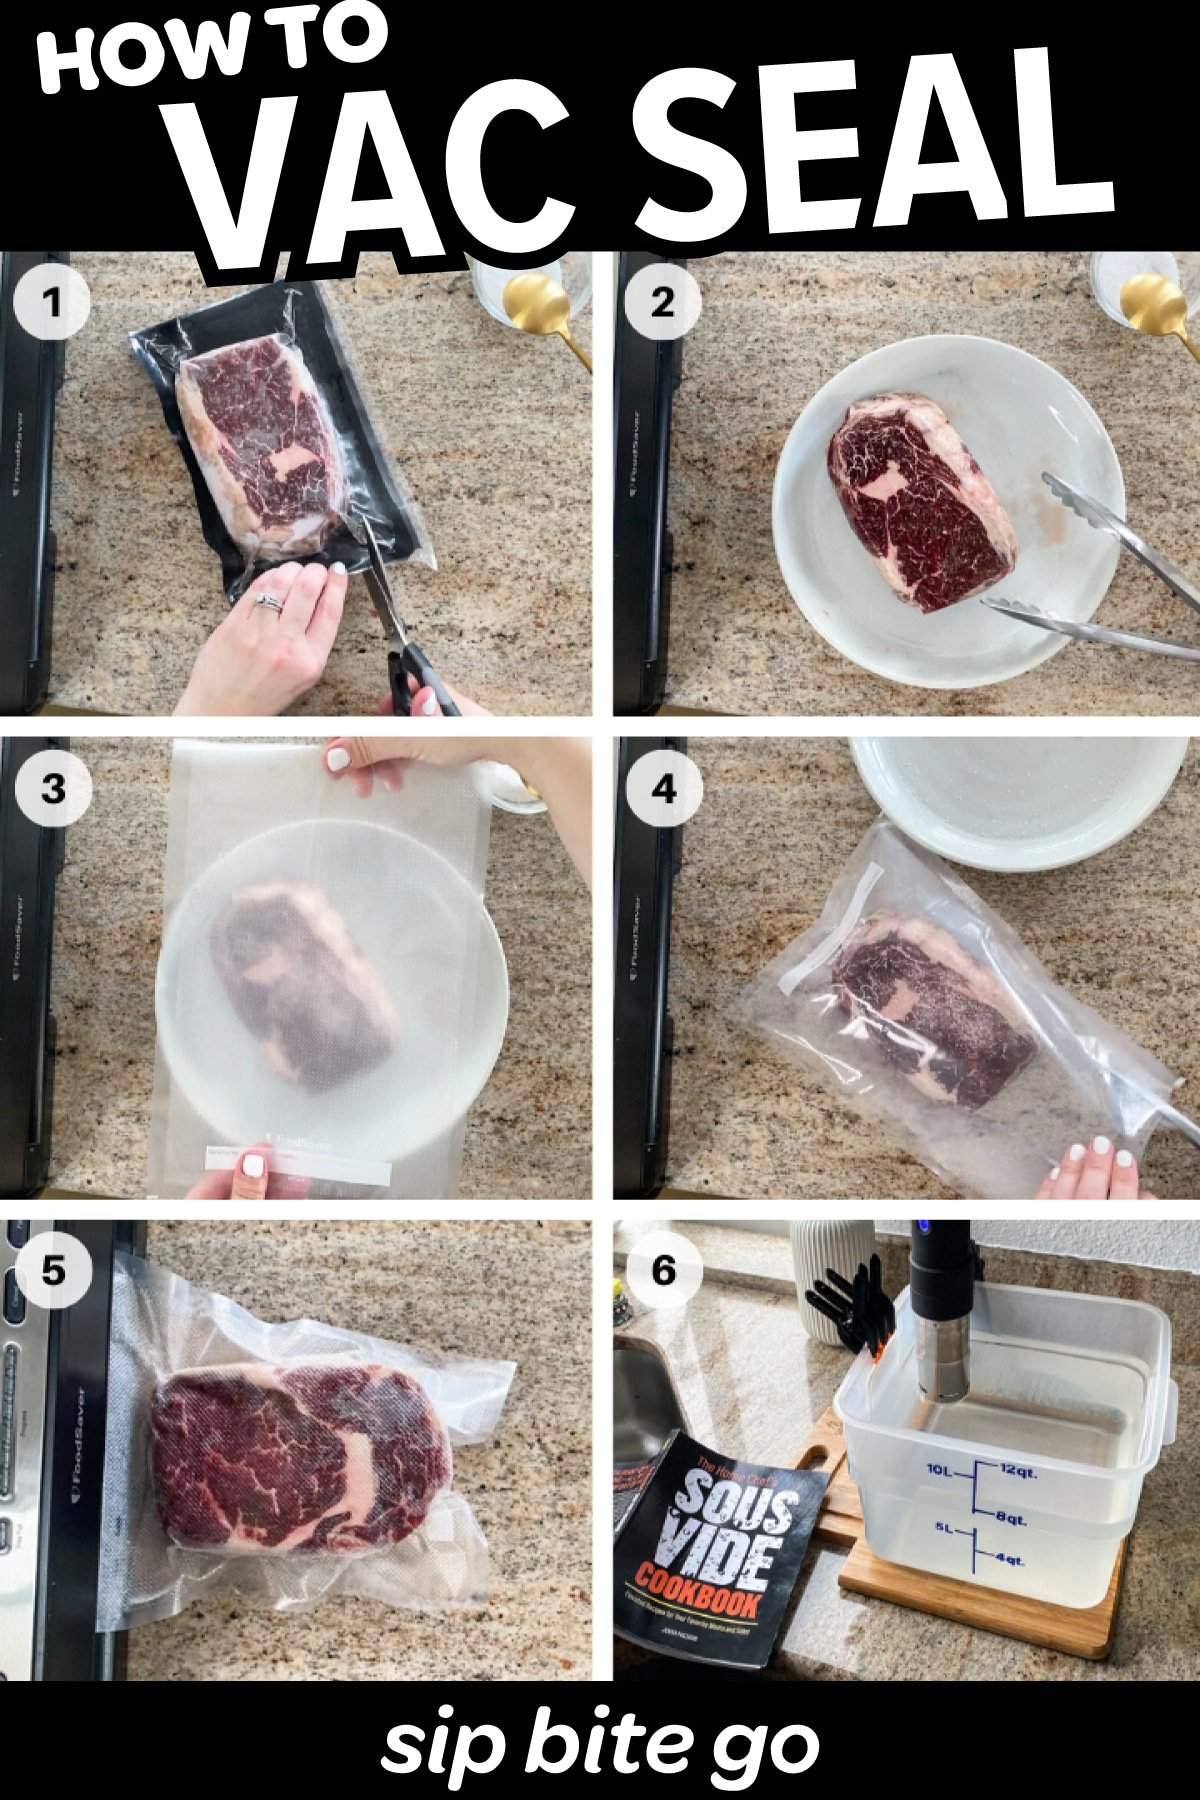 how to vacuum seal meat step by step